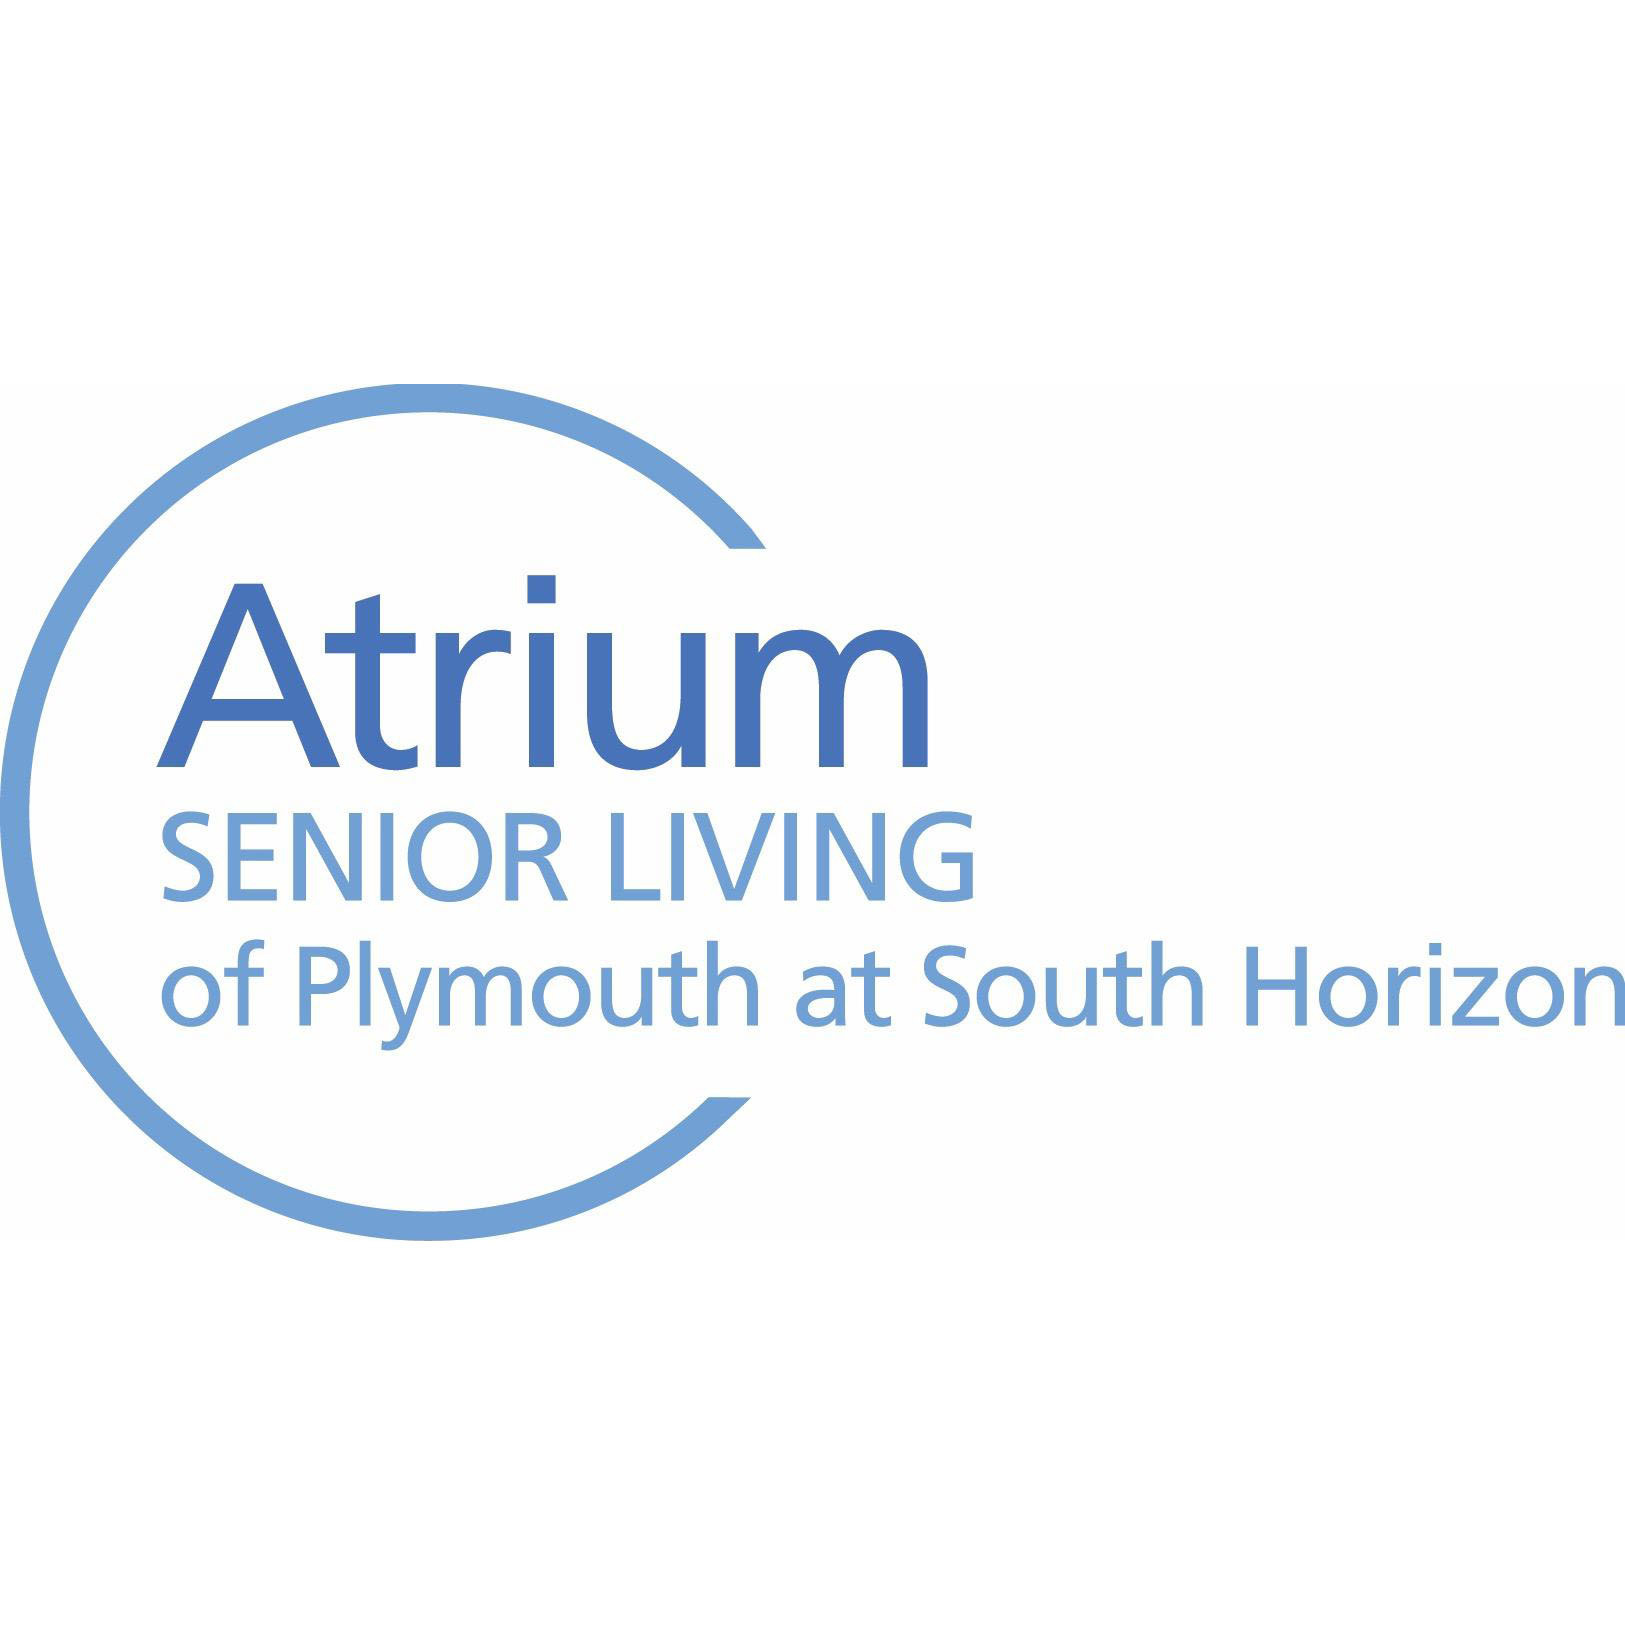 Atrium Senior Living of Plymouth at South Horizon